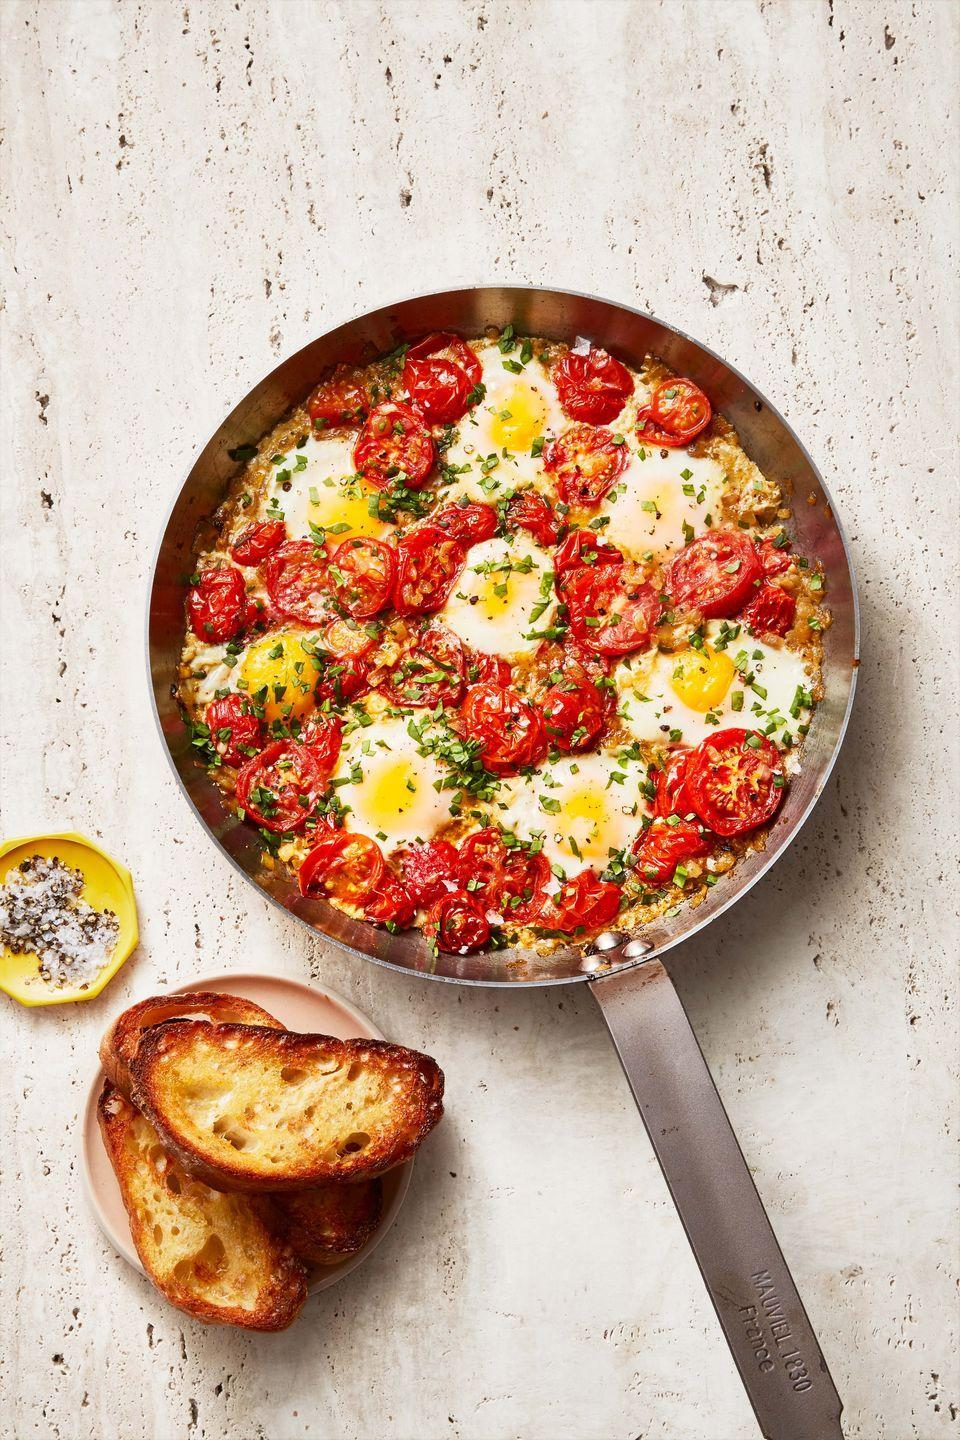 """<p>Serve this with a hunk of bread for dunking in those delicious, tomato-y juices.</p><p><em><a href=""""https://www.goodhousekeeping.com/food-recipes/a34908201/easy-shakshuka-recipe/"""" rel=""""nofollow noopener"""" target=""""_blank"""" data-ylk=""""slk:Get the recipe for Shakshuka »"""" class=""""link rapid-noclick-resp"""">Get the recipe for Shakshuka »</a></em></p>"""